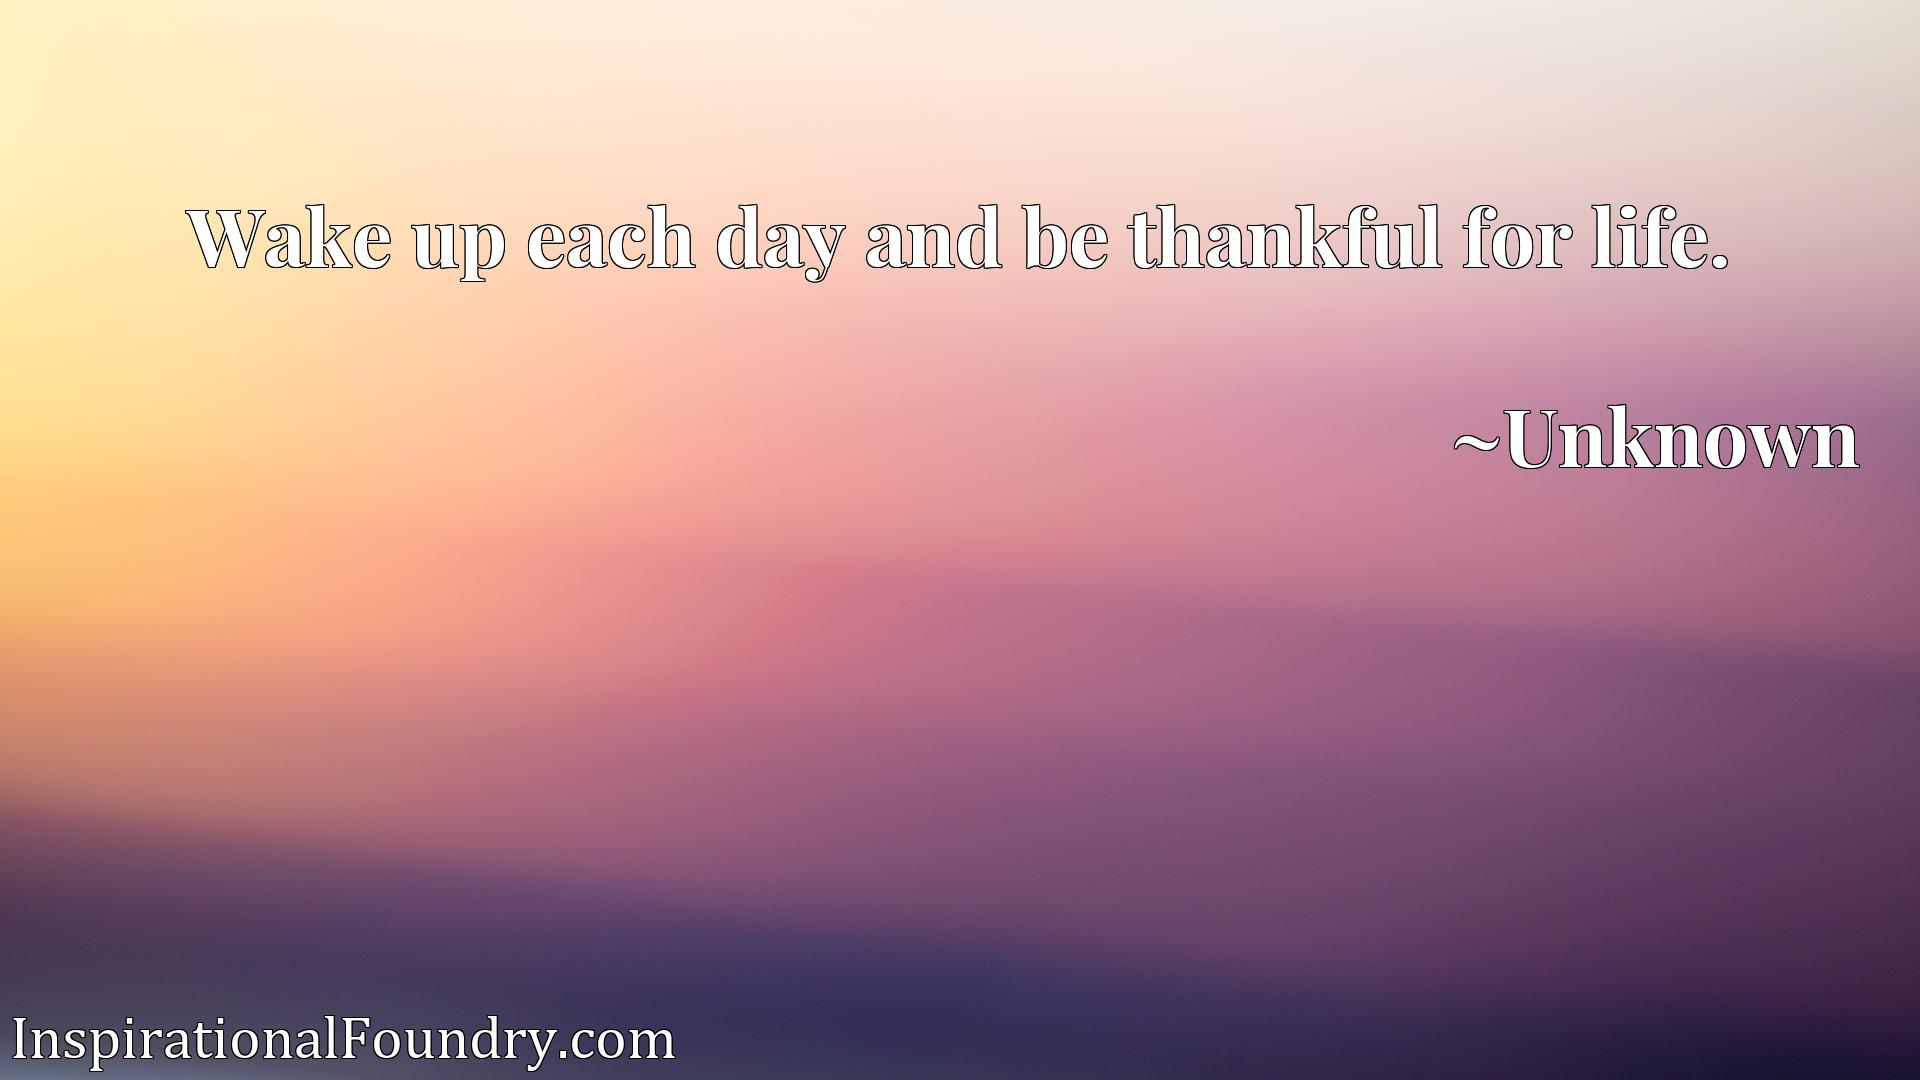 Quote Picture :Wake up each day and be thankful for life.